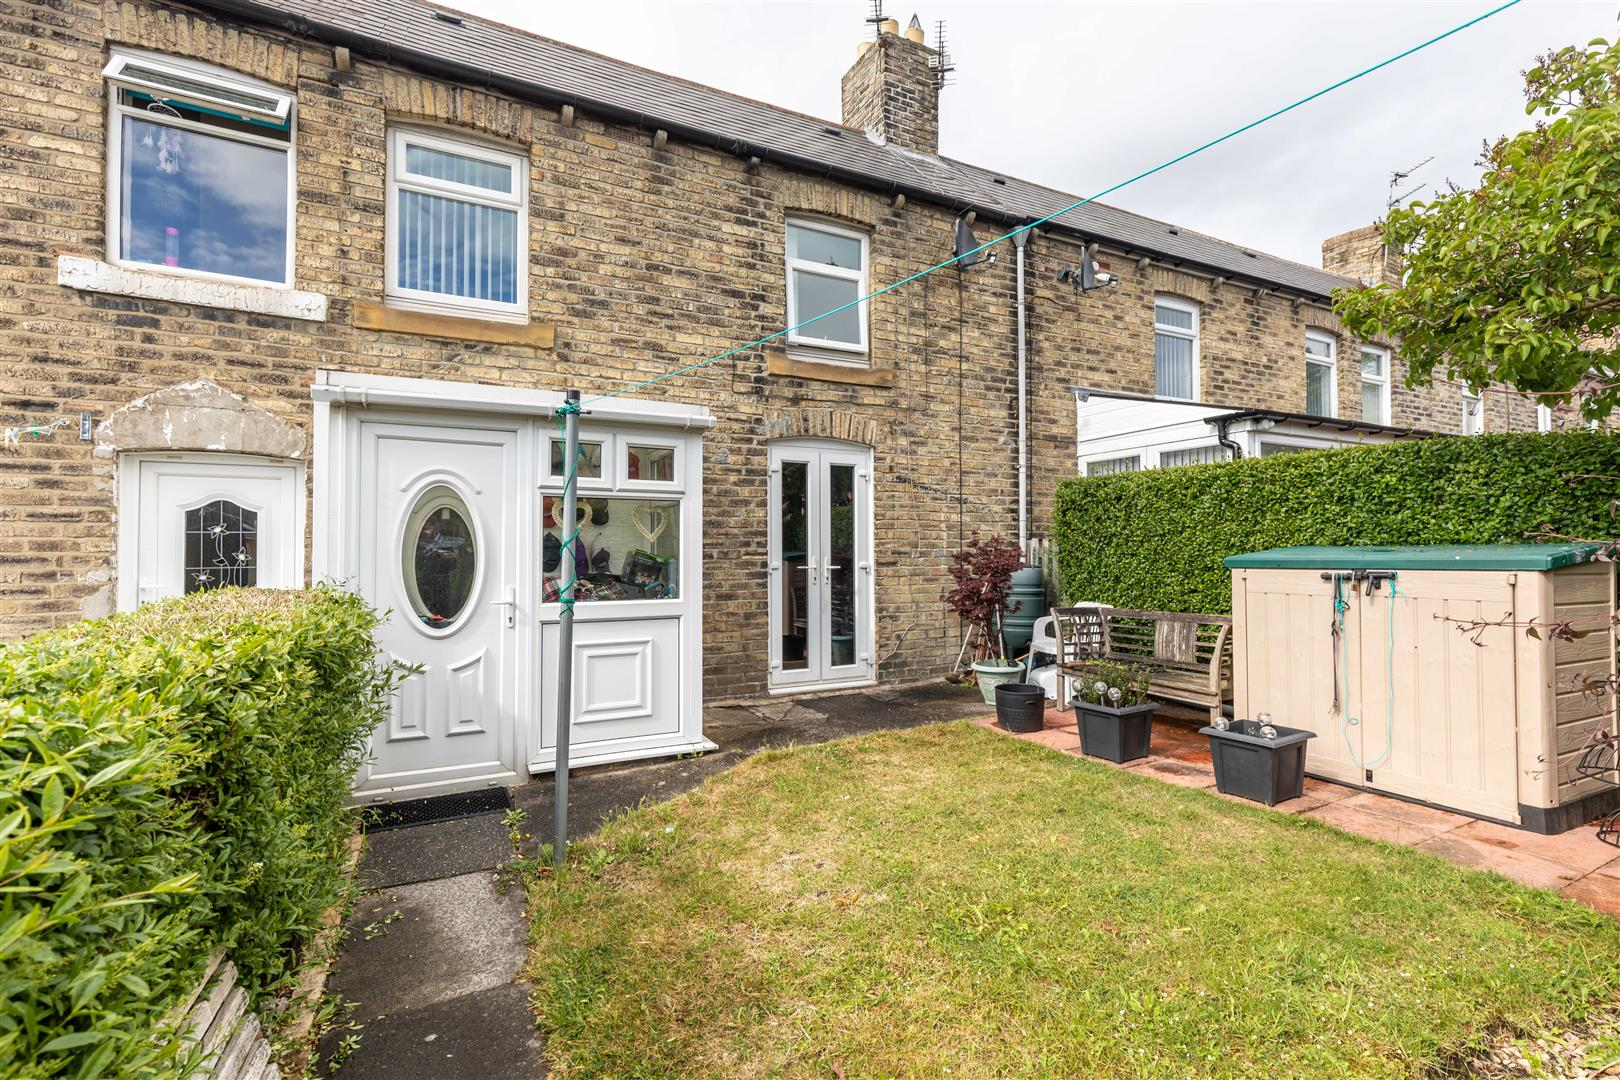 3 bed terraced house for sale in Ashington, NE63 8HX, NE63